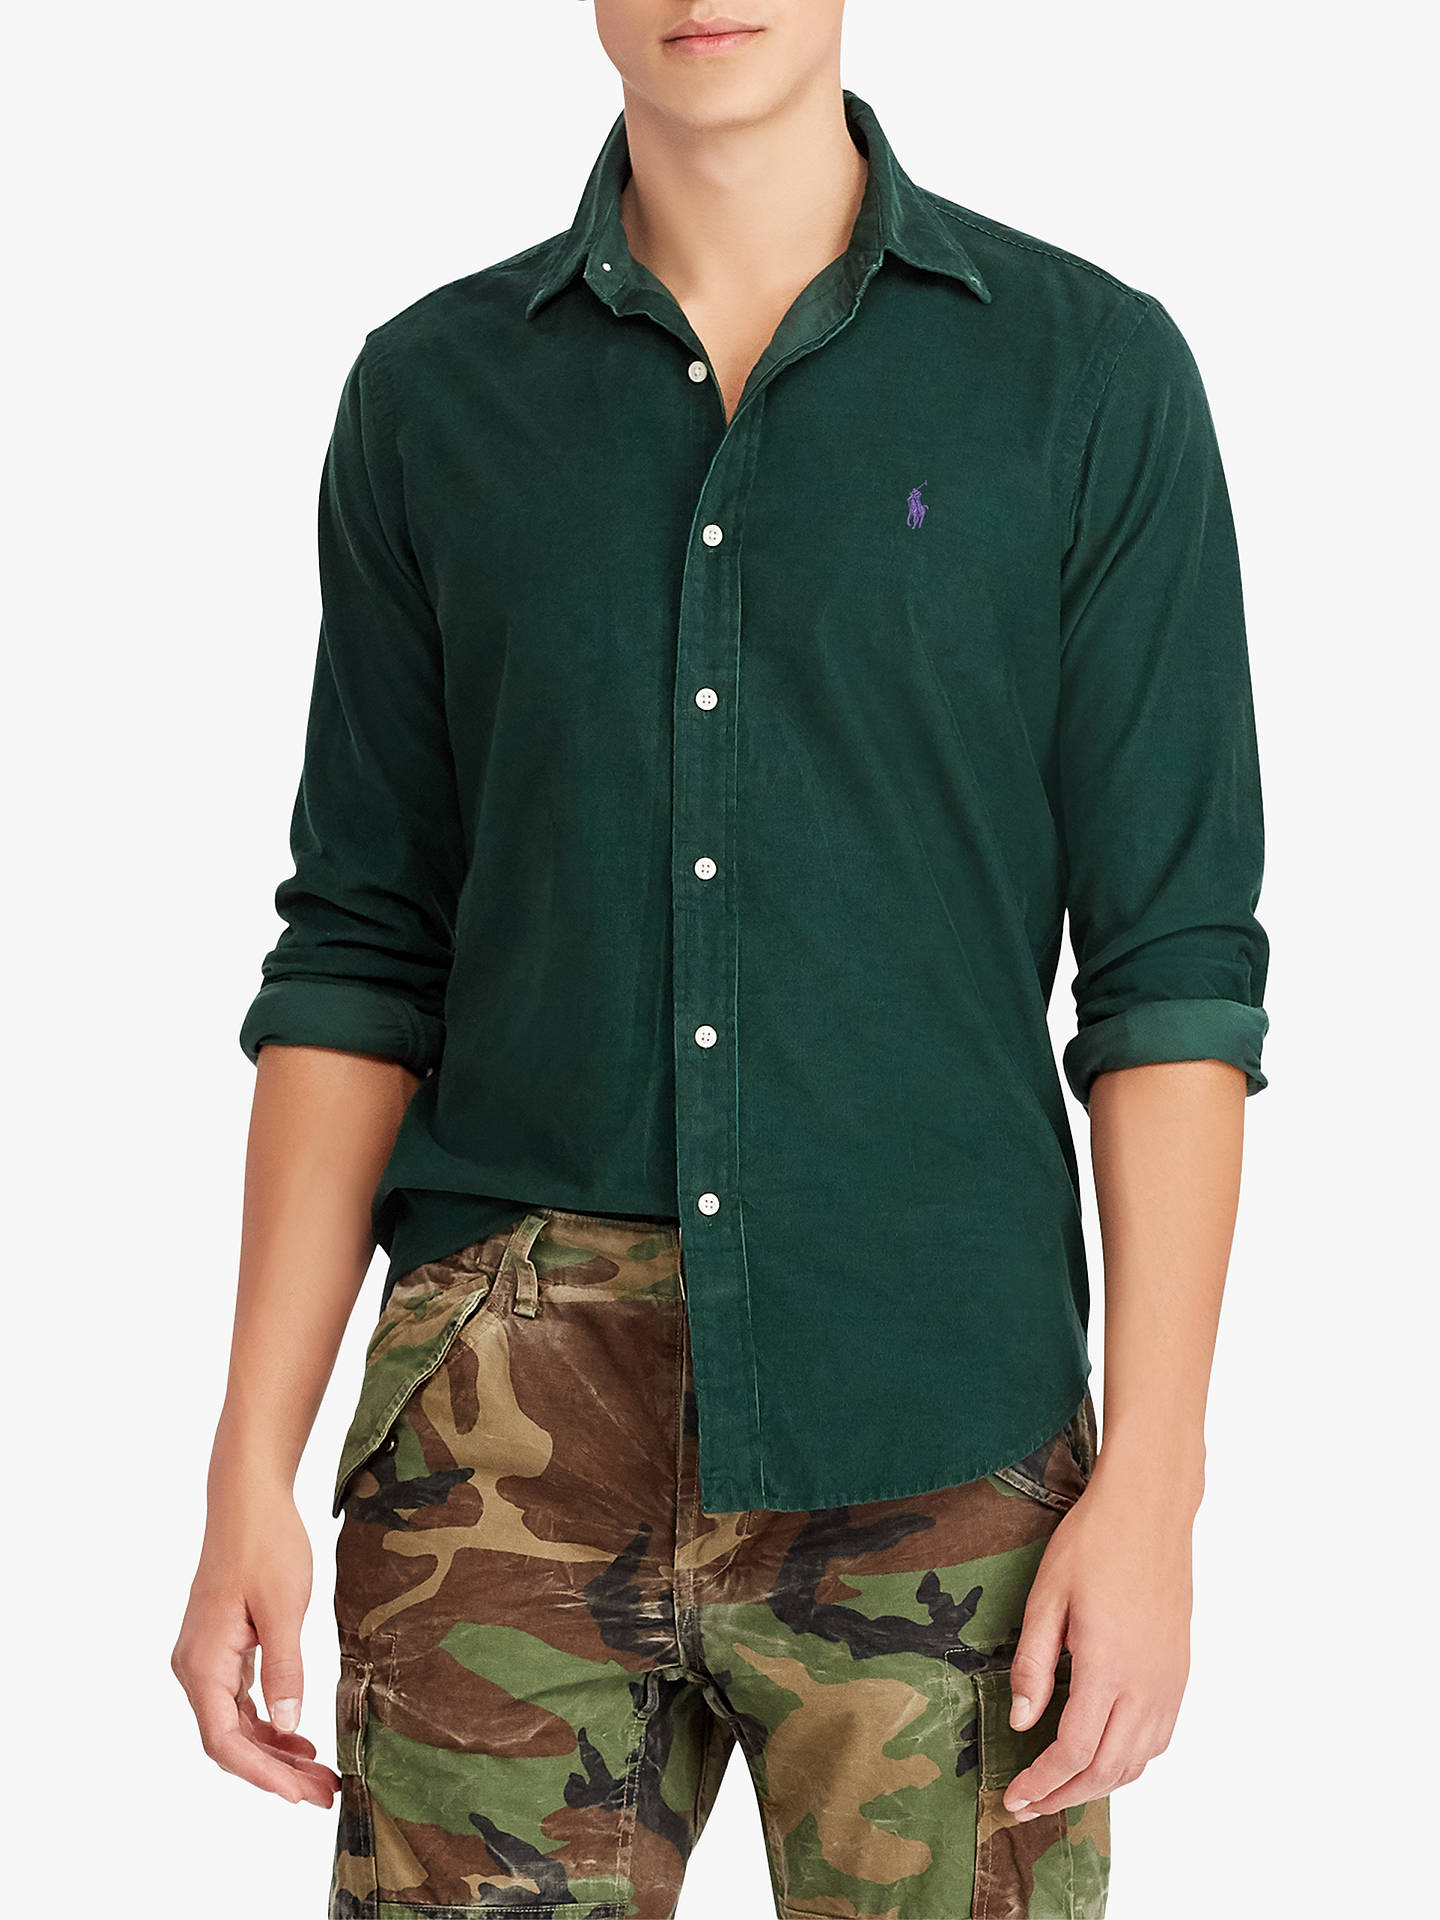 05ee8864 Buy Polo Ralph Lauren Corduroy Sports Shirt, College Green, S Online at  johnlewis.